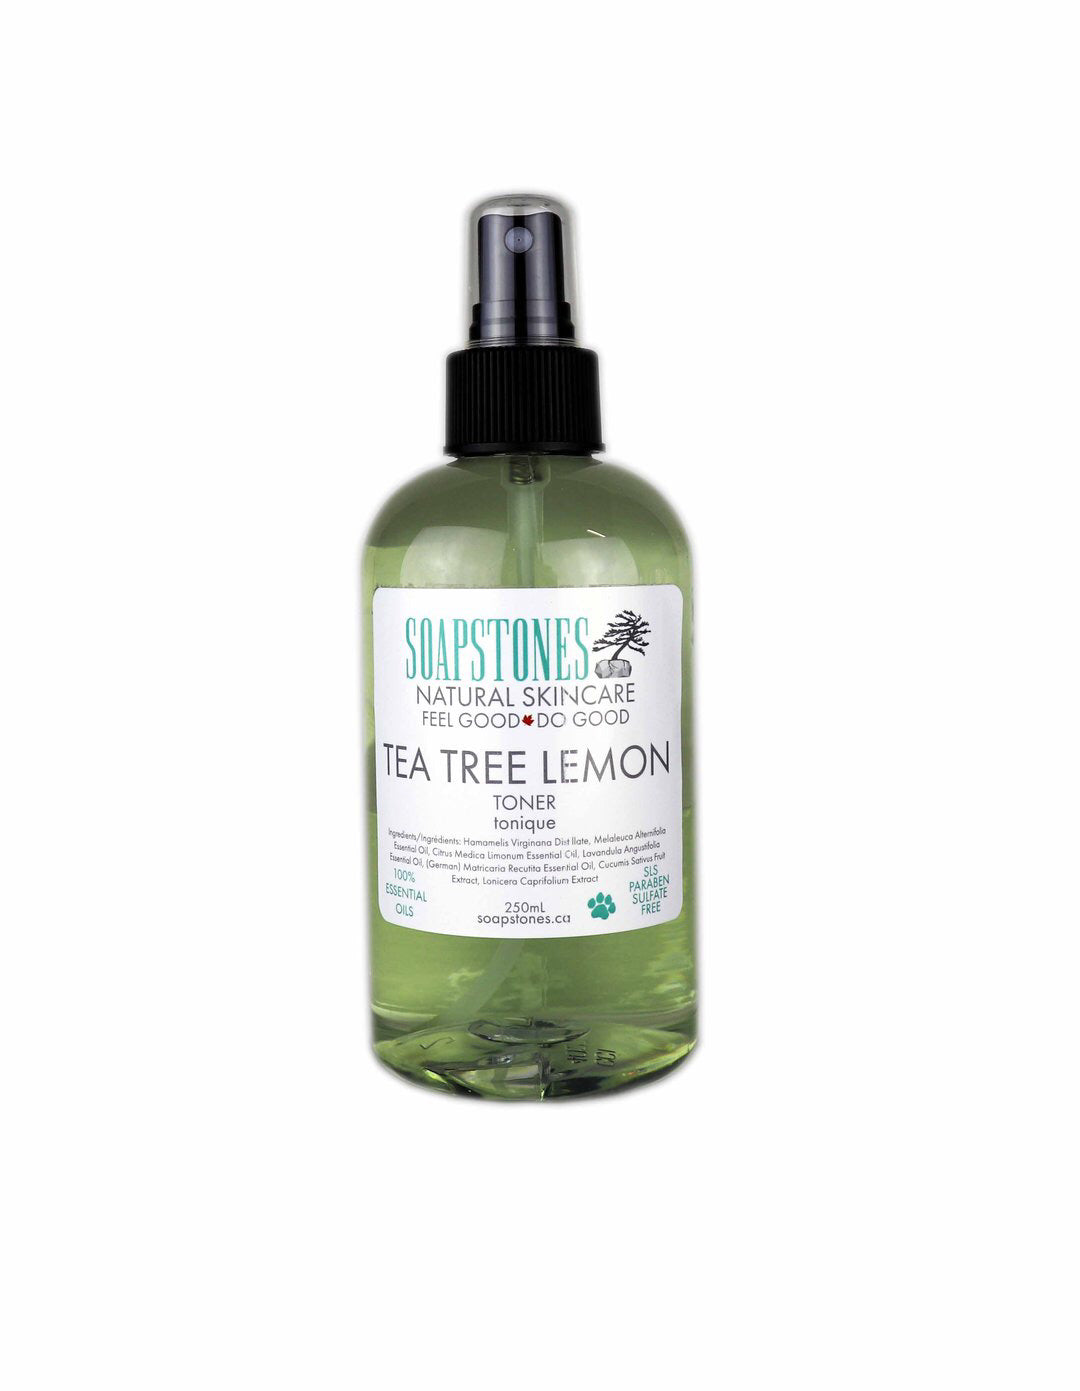 Tea Tree Lemon Toner